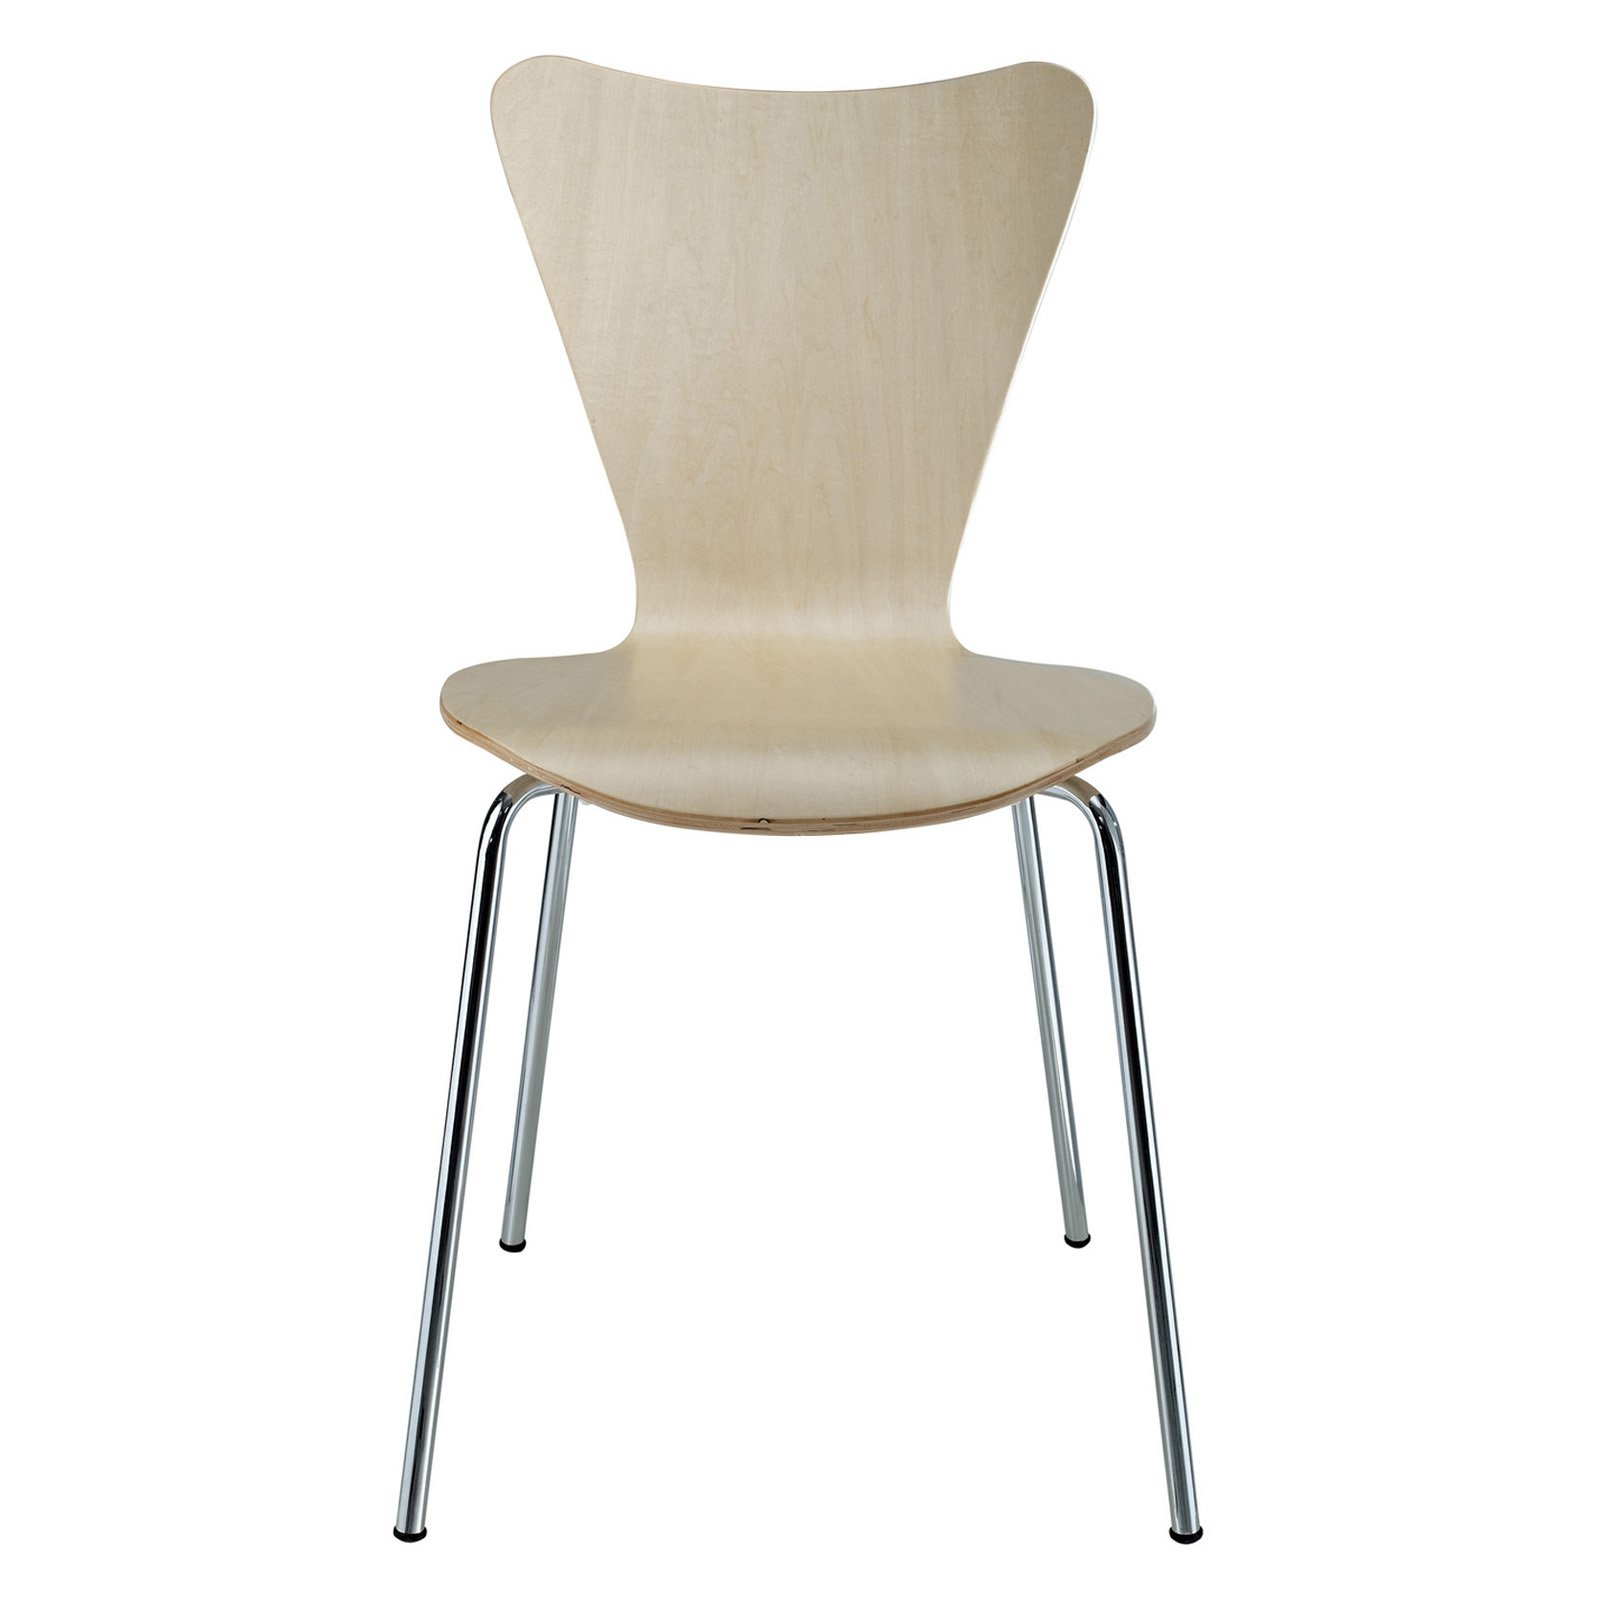 Modway Ernie Dining Side Chair with Chrome Legs Multiple Colors